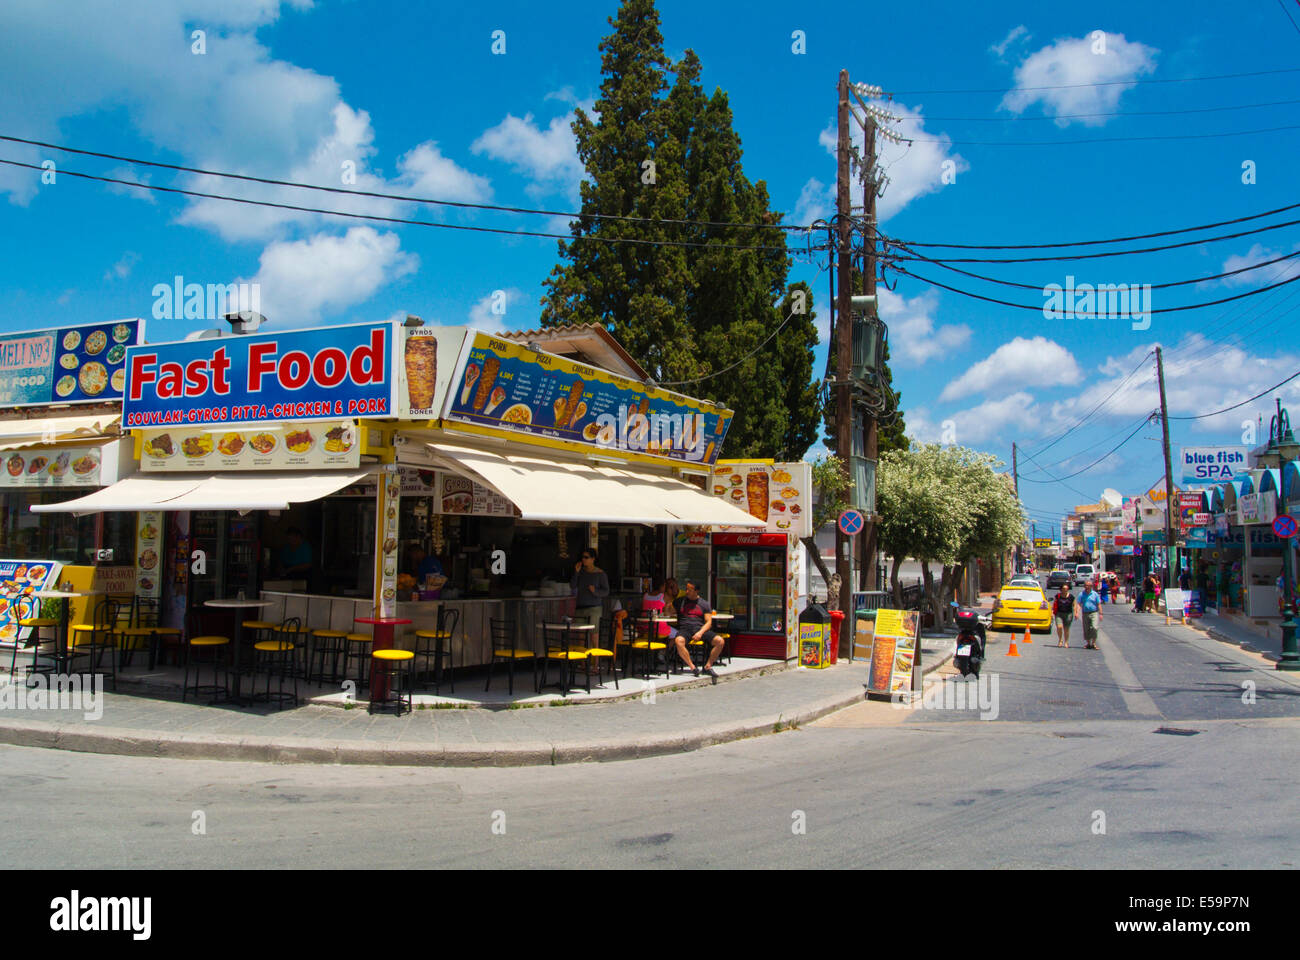 Main street with fast food restaurants, Faliraki resort, Rhodes island, Dodecanese islands, Greece, Europe Stock Photo